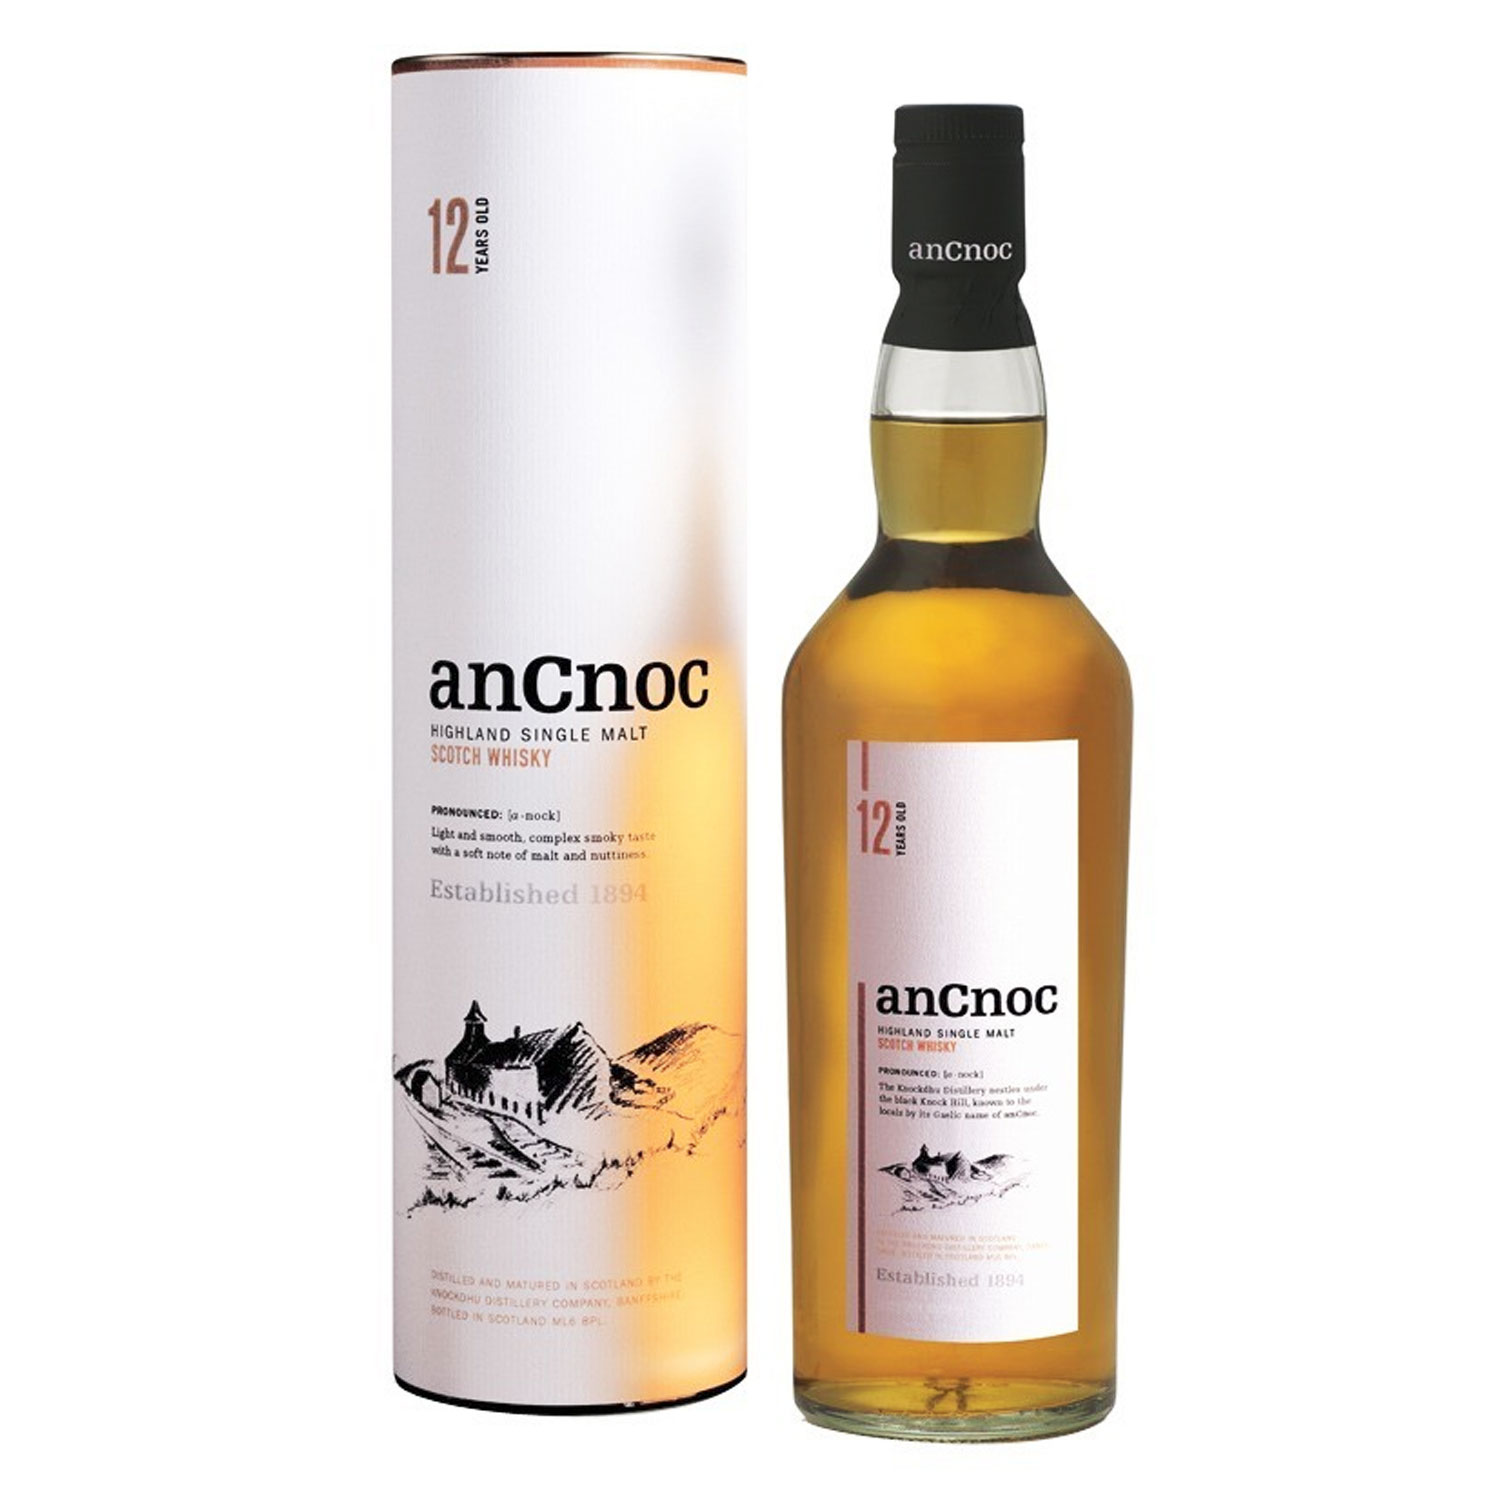 Whisky - anCnoc 12 ans - Single Malt - 40° - 70cl